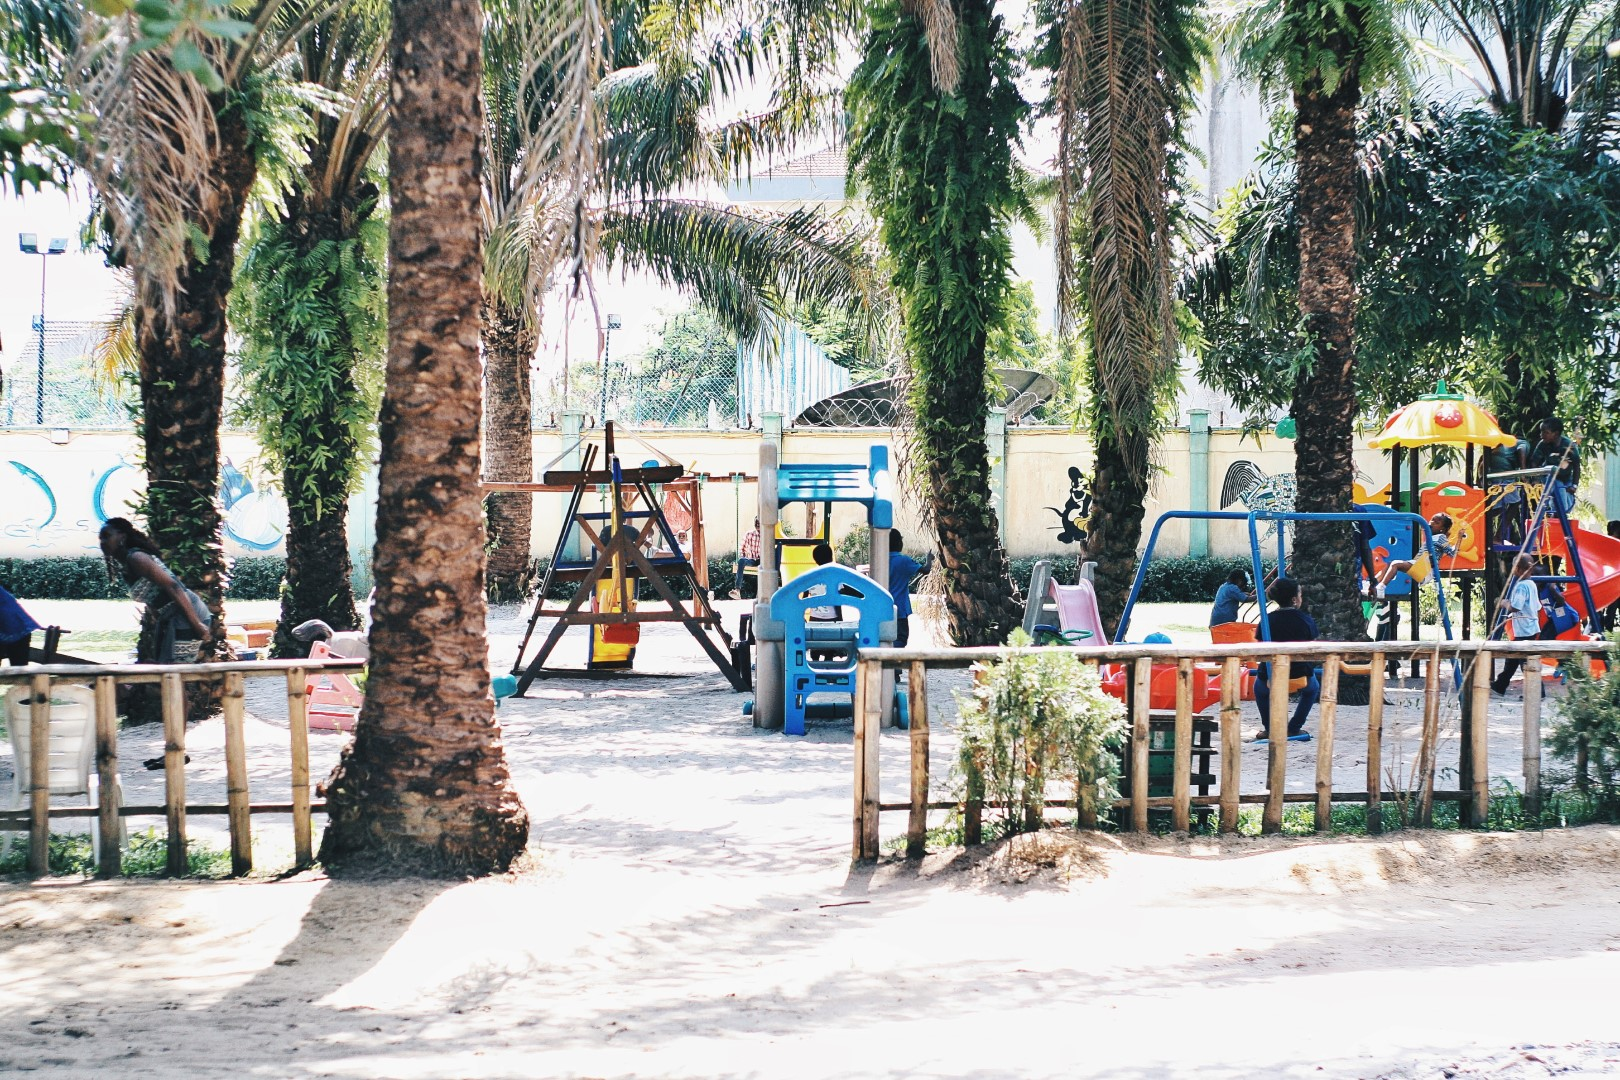 Children's area to play at the lufasi nature park, lekki